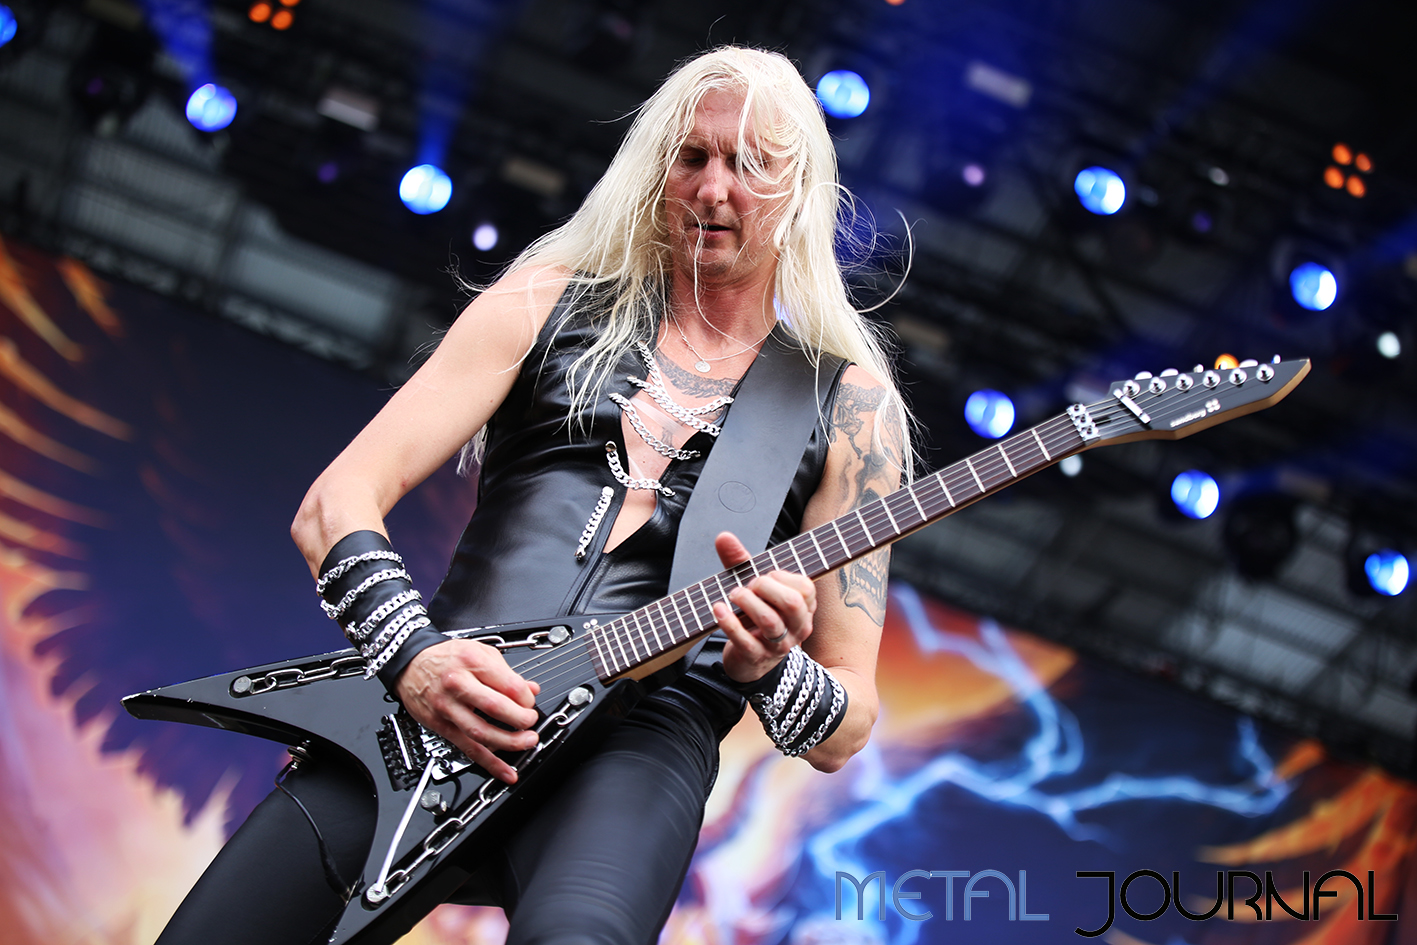 hammerfall - metal journal rock fest barcelona 2019 pic 9